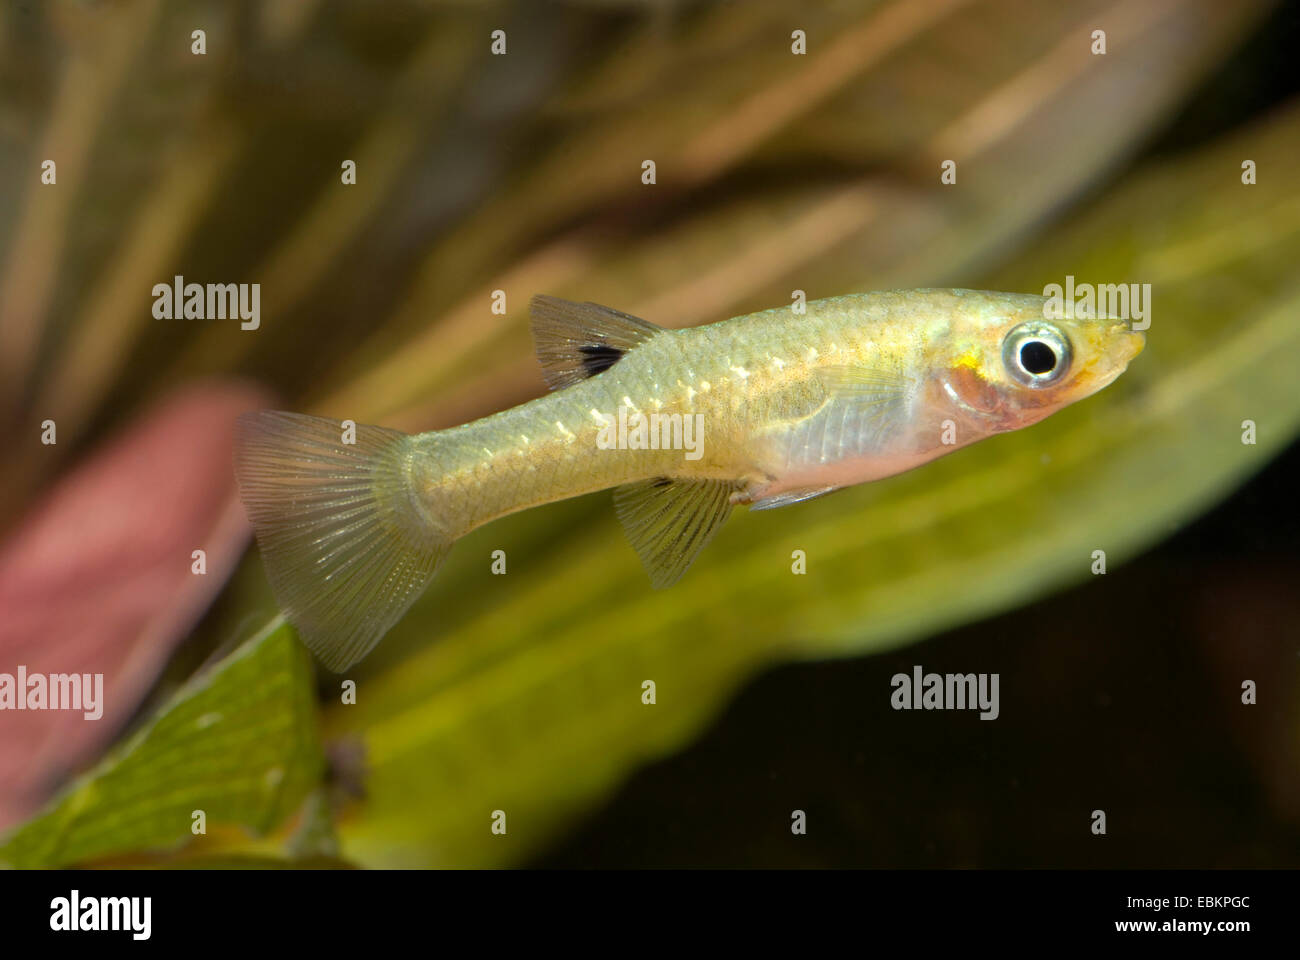 Girardinus, Metallic livebearer, Black Bellied Metallic Topminnow (Girardinus metallicus), swimming Stock Photo